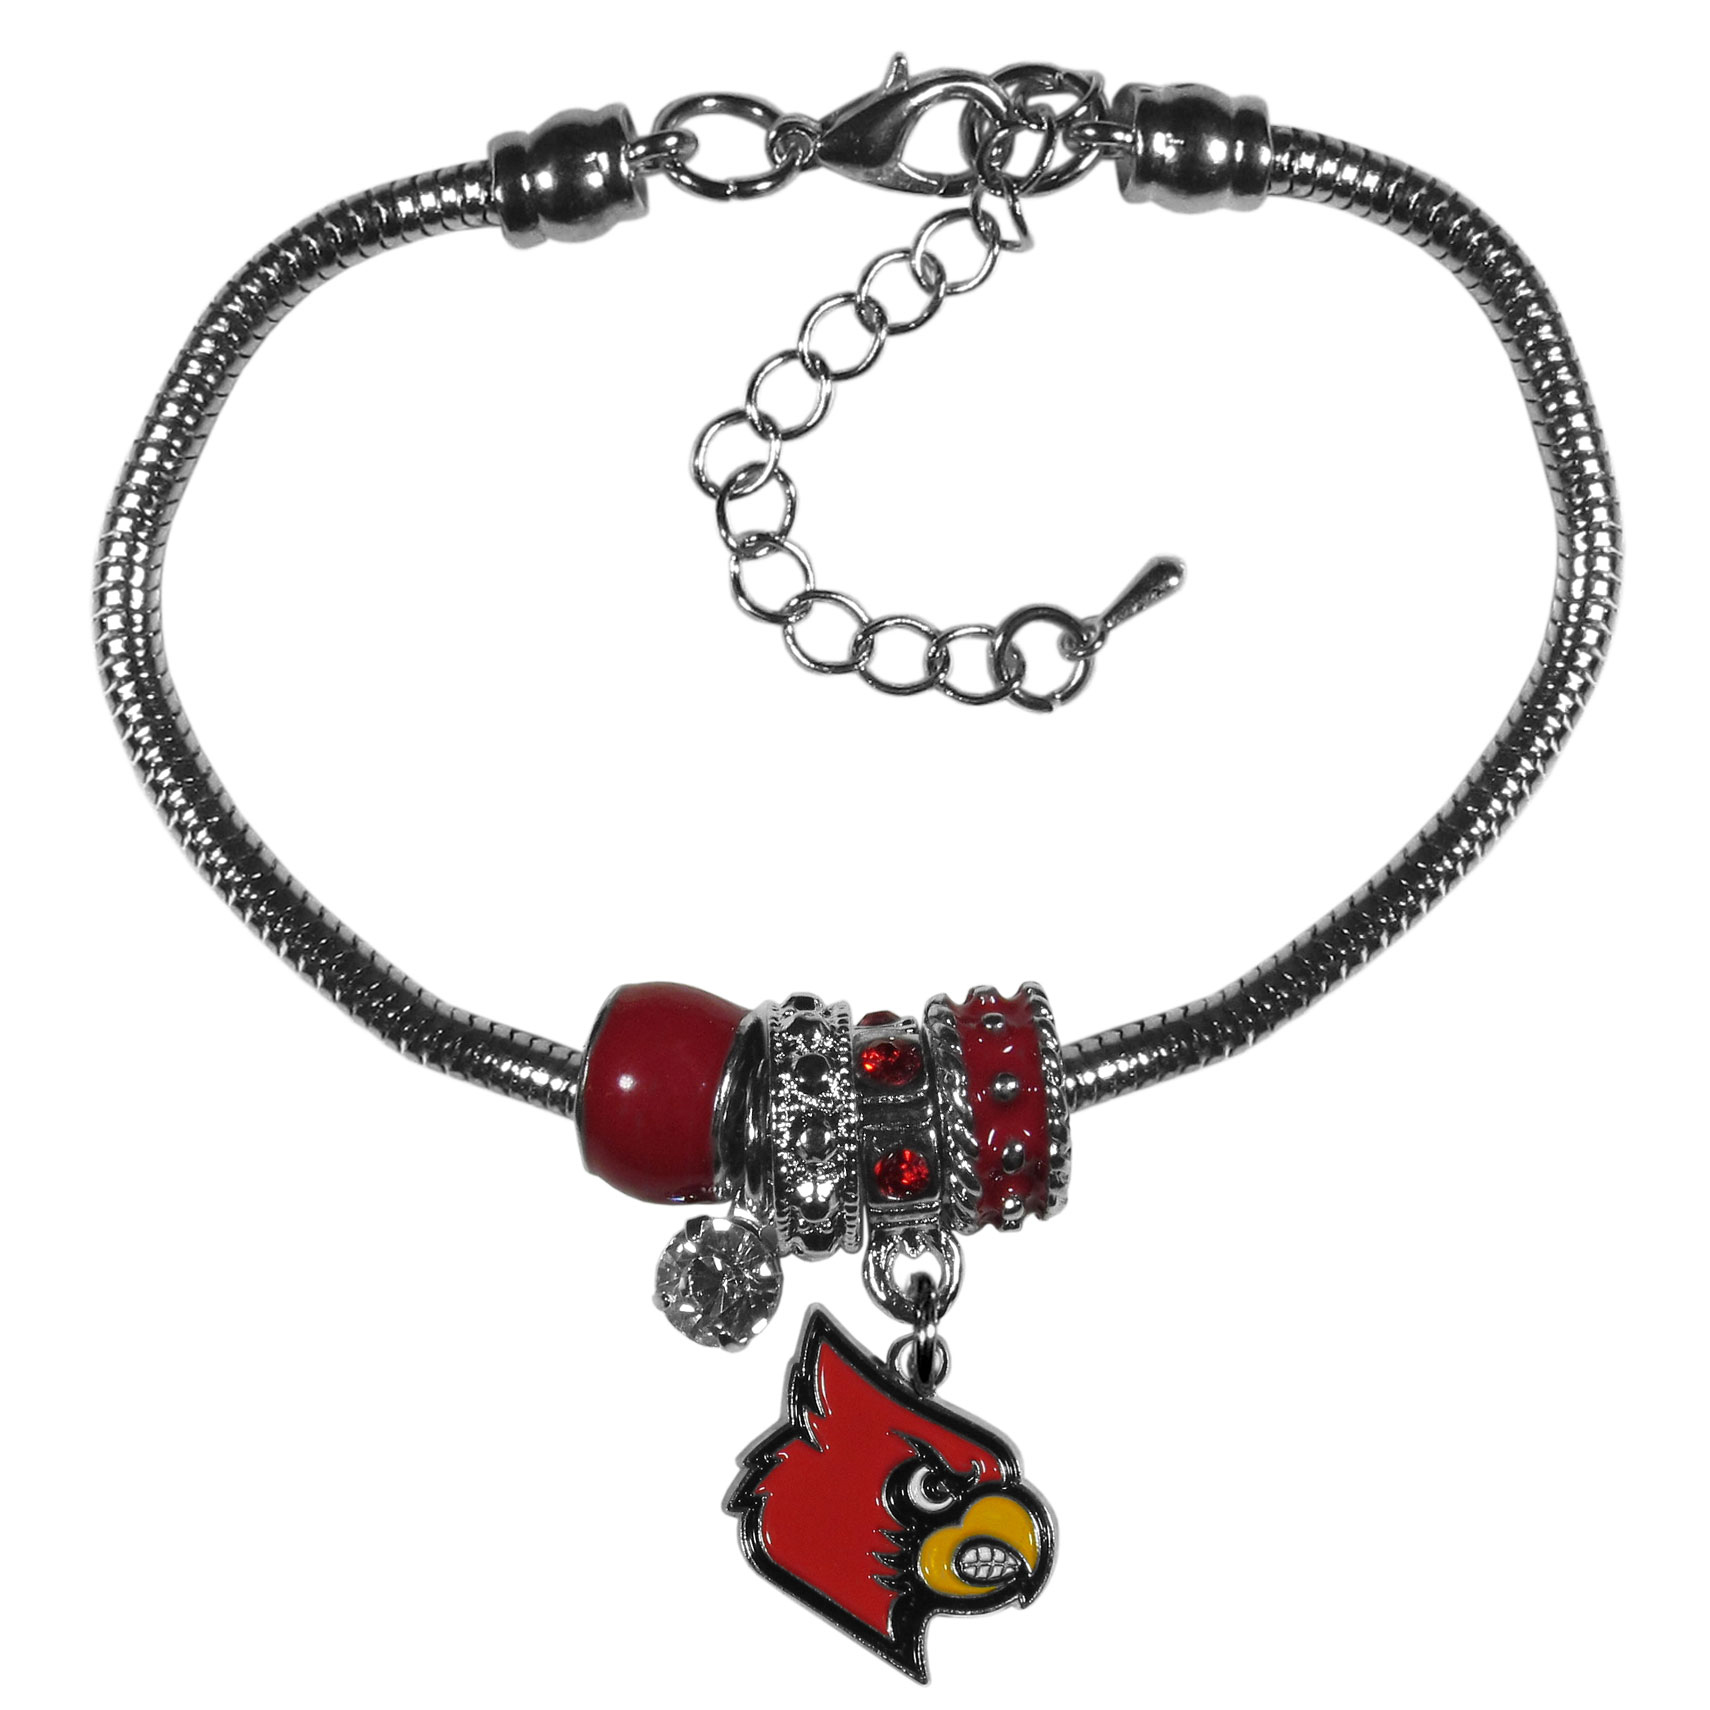 Louisville Cardinals Euro Bead Bracelet - We have combined the wildly popular Euro style beads with your favorite team to create our  Louisville Cardinals bead bracelet. The 7.5 inch snake chain with 2 inch extender features 4 Euro beads with enameled team colors and rhinestone accents with a high polish, nickel free charm and rhinestone charm. Perfect way to show off your team pride.